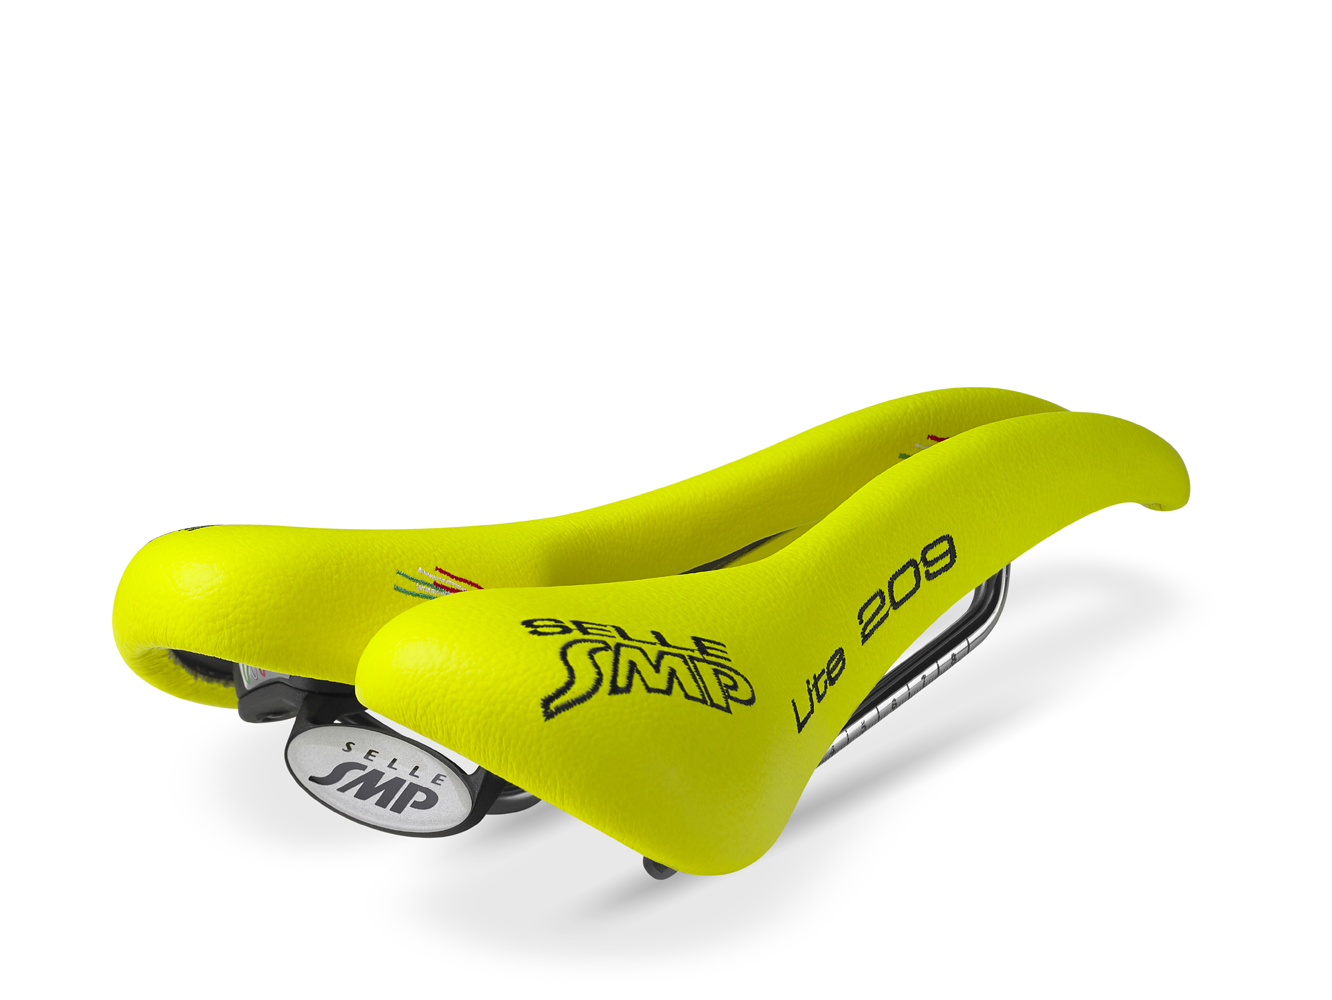 selle smp lite 209 bicycle saddle fluorescent yellow synthetic road mountain ebay. Black Bedroom Furniture Sets. Home Design Ideas